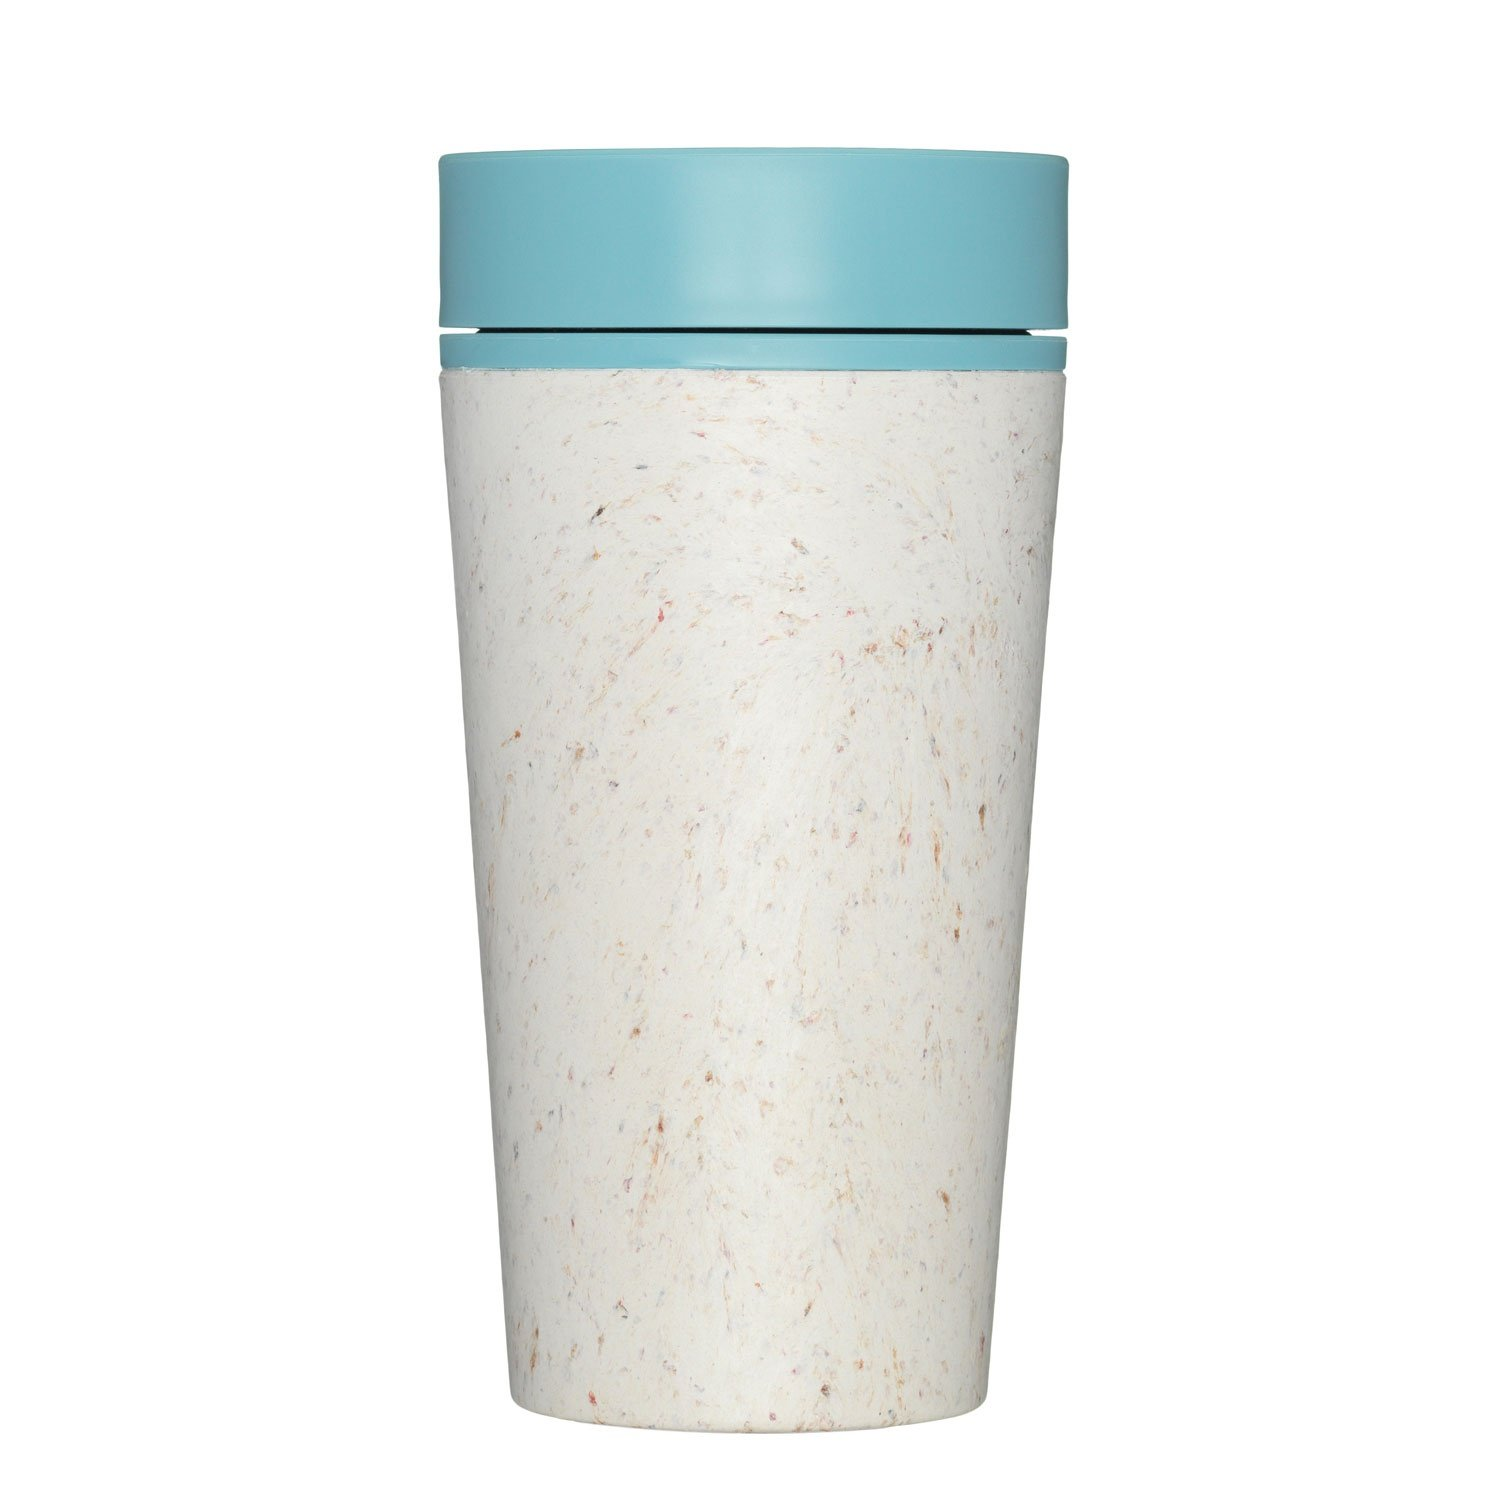 rCUP Worlds First Reusable Travel Cup Made from Recycled Single-Use Cups Cream - Earth Green 12oz // 340ml